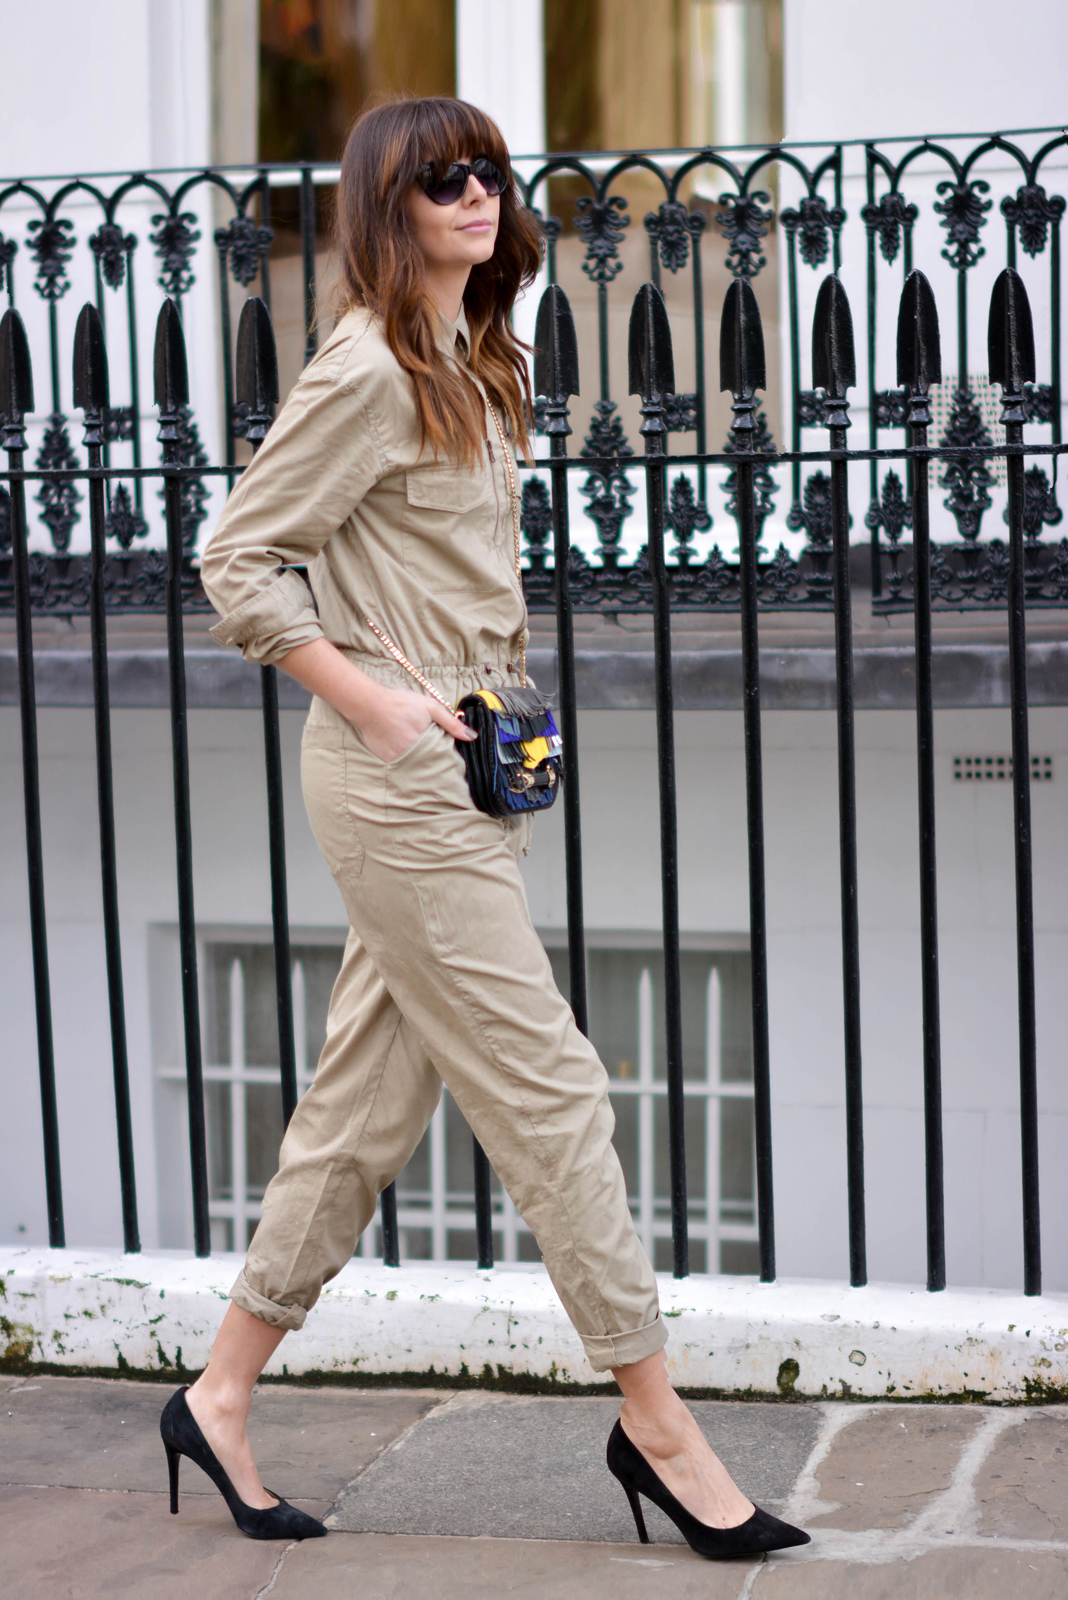 EJSTYLE - Emma Hill, H&M jumpsuit boilersuit, H&M Concious collection, Jimmy Choo fringe Zadie bag, Zara black suede court shoes, OOTD, London Street style